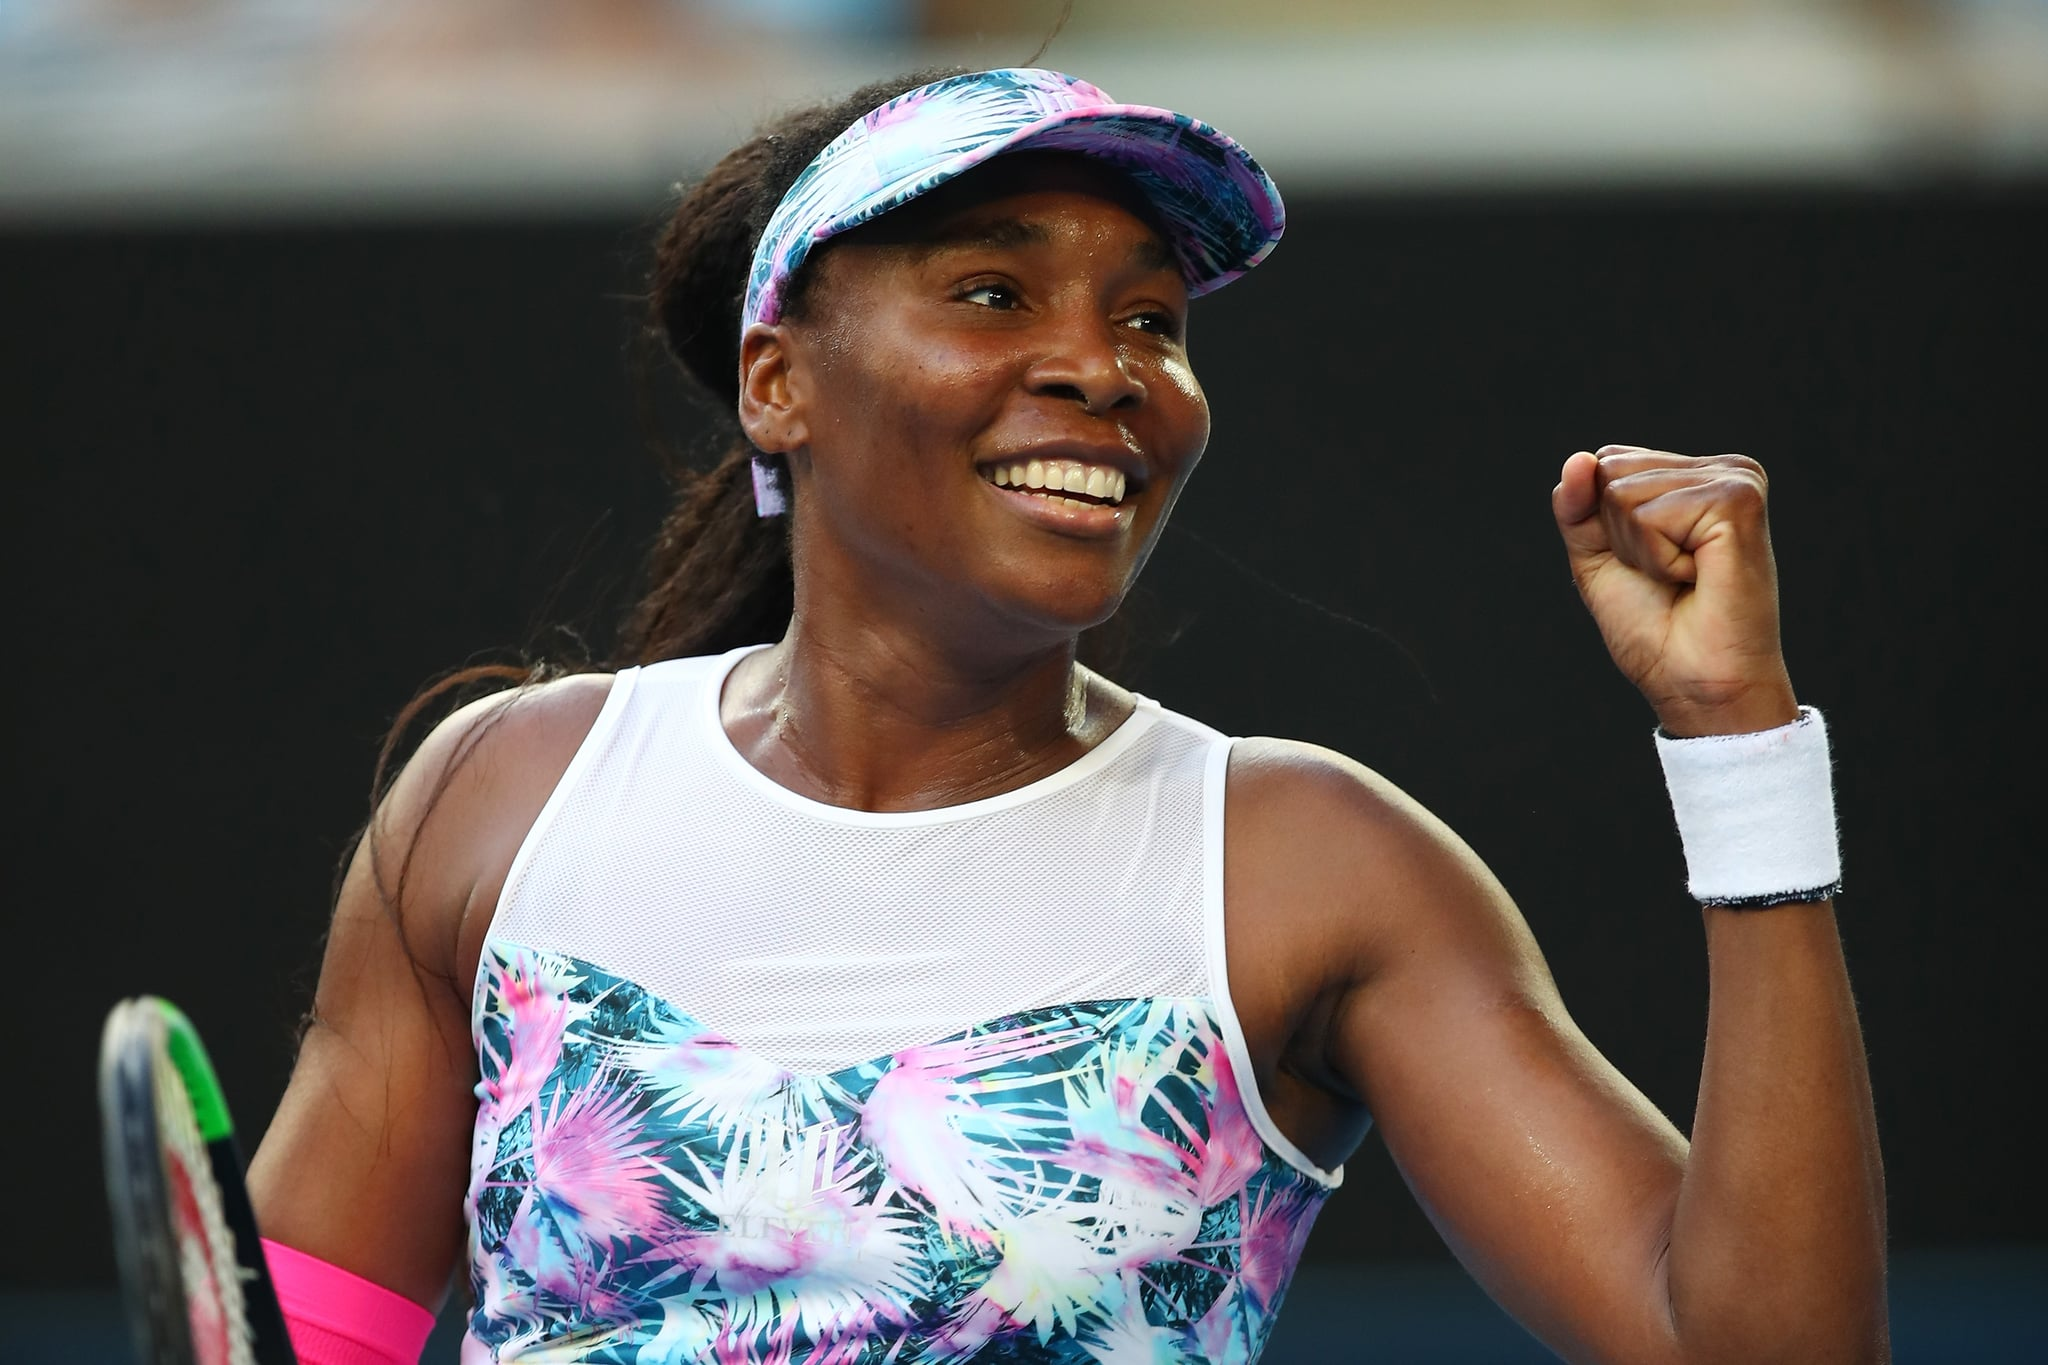 MELBOURNE, AUSTRALIA - JANUARY 15:  Venus Williams of the United States celebrates after winning match point in her first round match against Mihaela Buzarnescu of Romania during day two of the 2019 Australian Open at Melbourne Park on January 15, 2019 in Melbourne, Australia.  (Photo by Cameron Spencer/Getty Images)